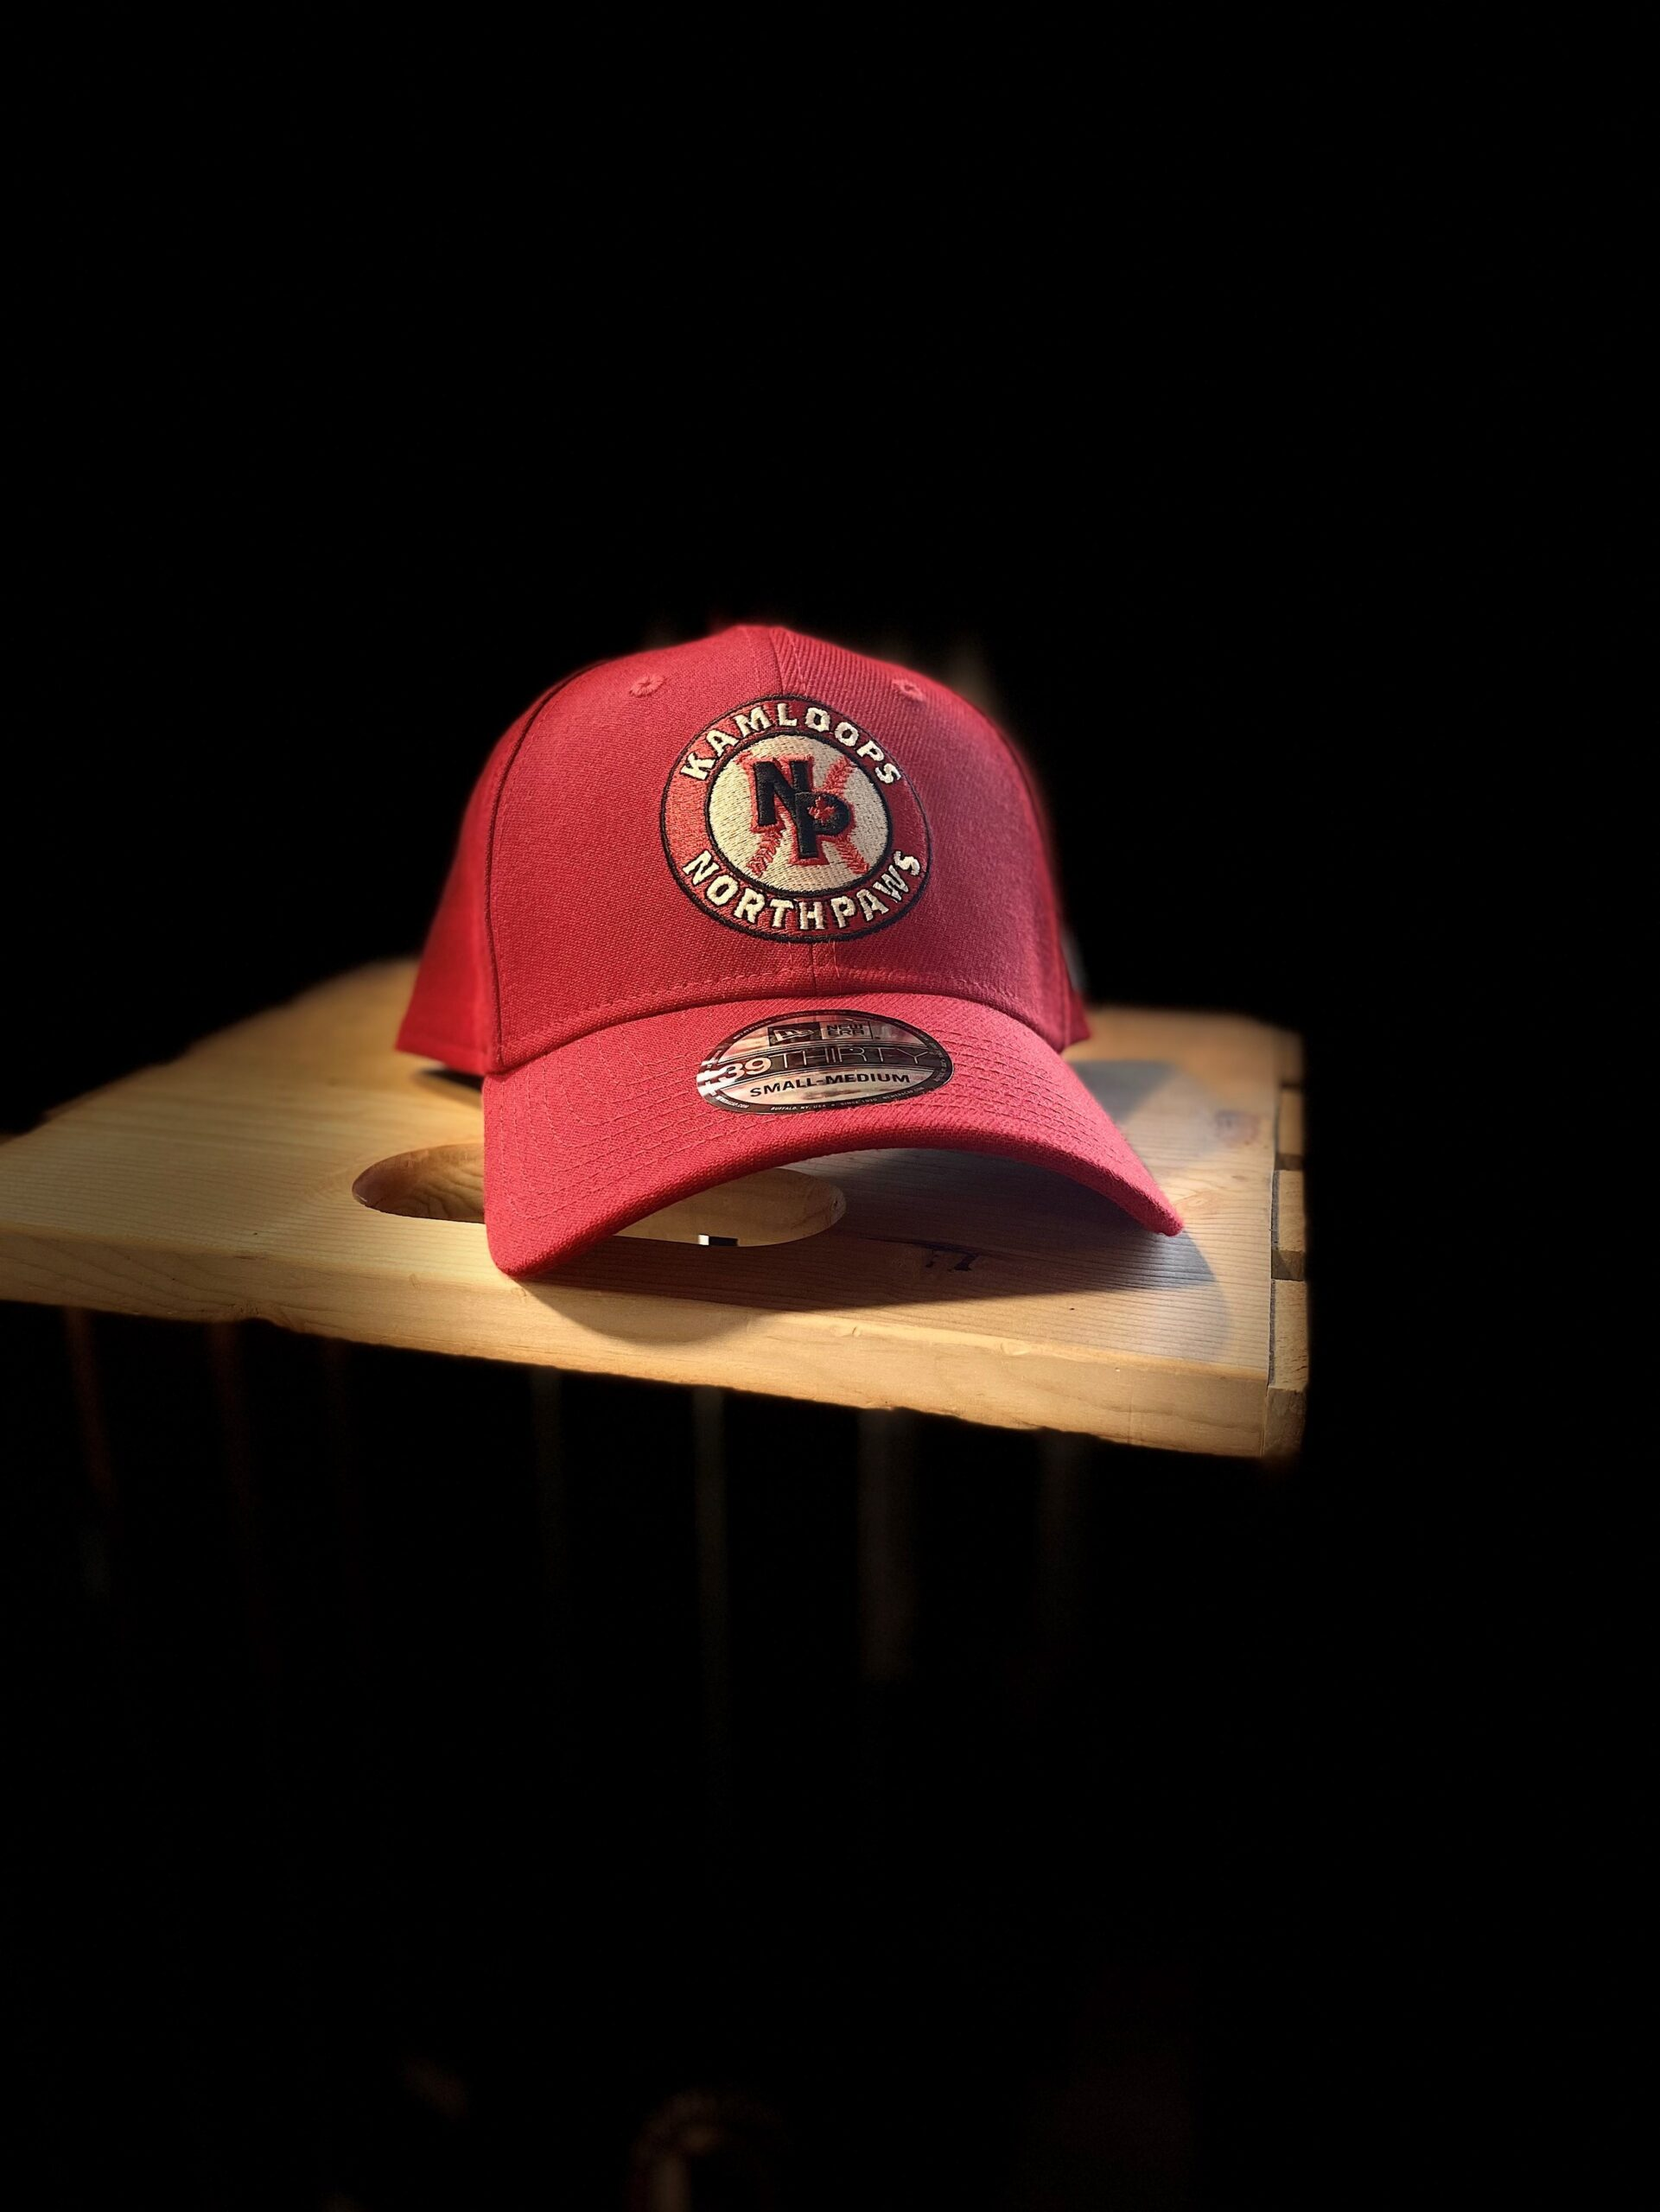 NorthPaws New Era 39THIRTY Flexfit in Red